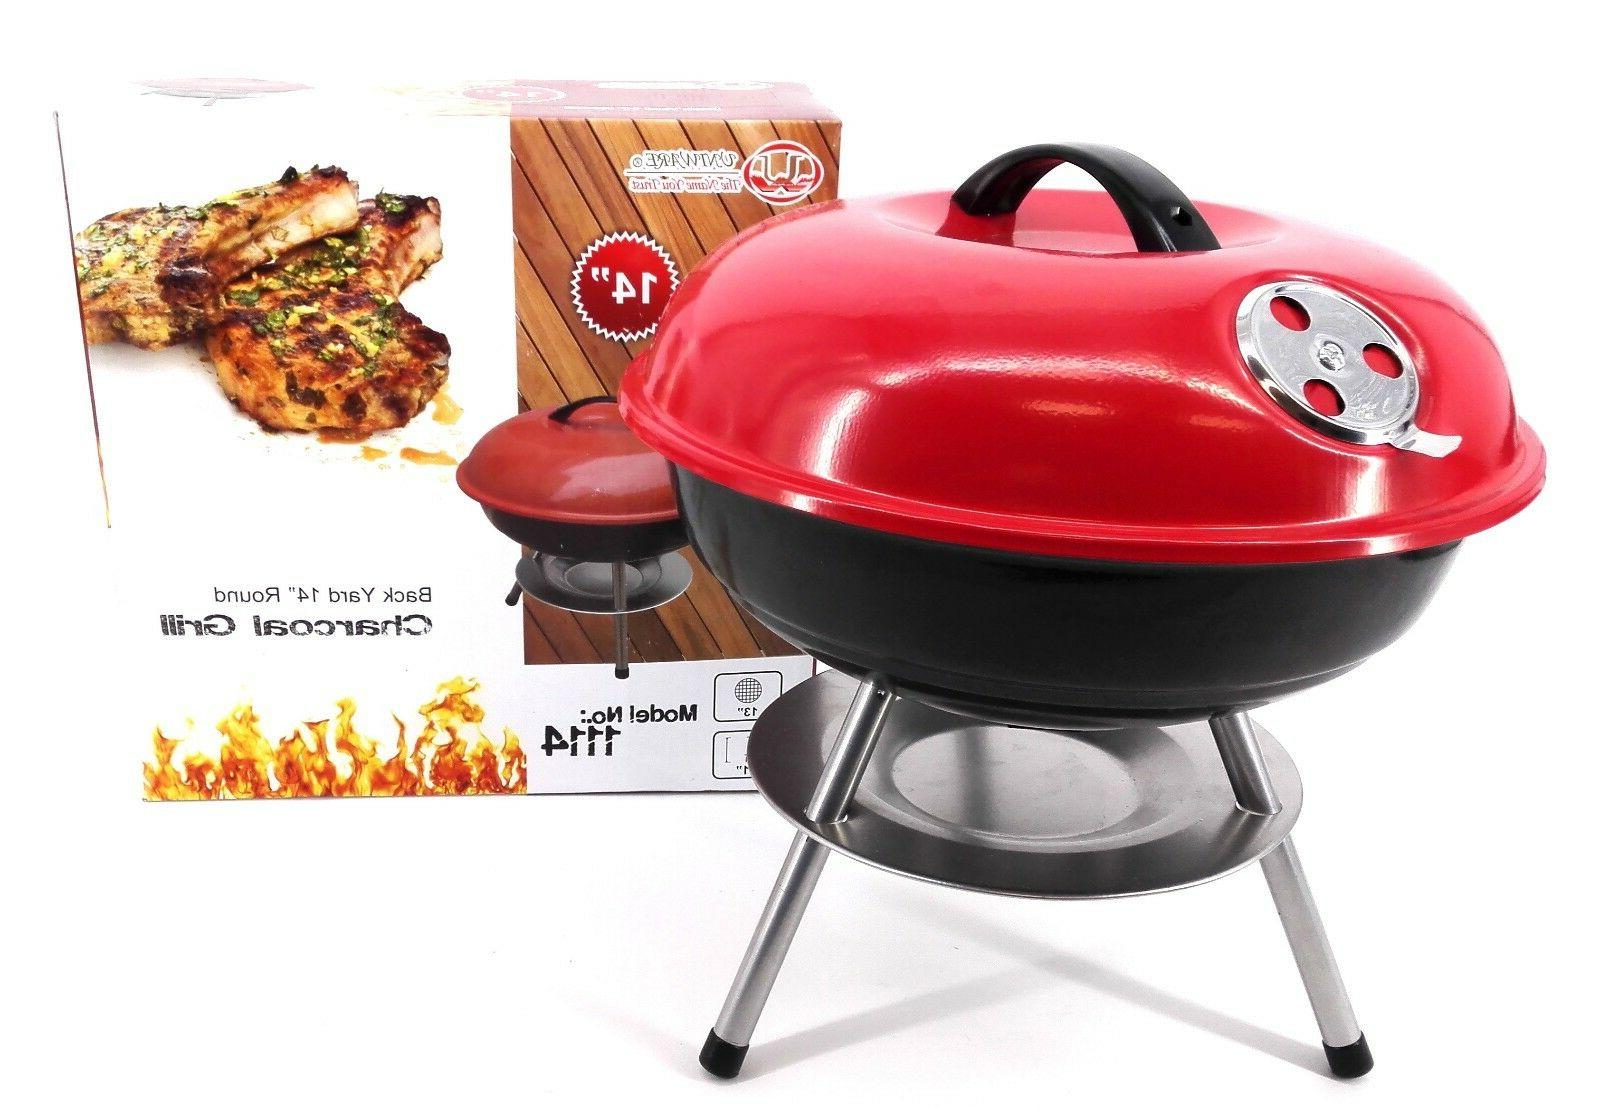 charcoal barbecue cooking grill chrome plated red